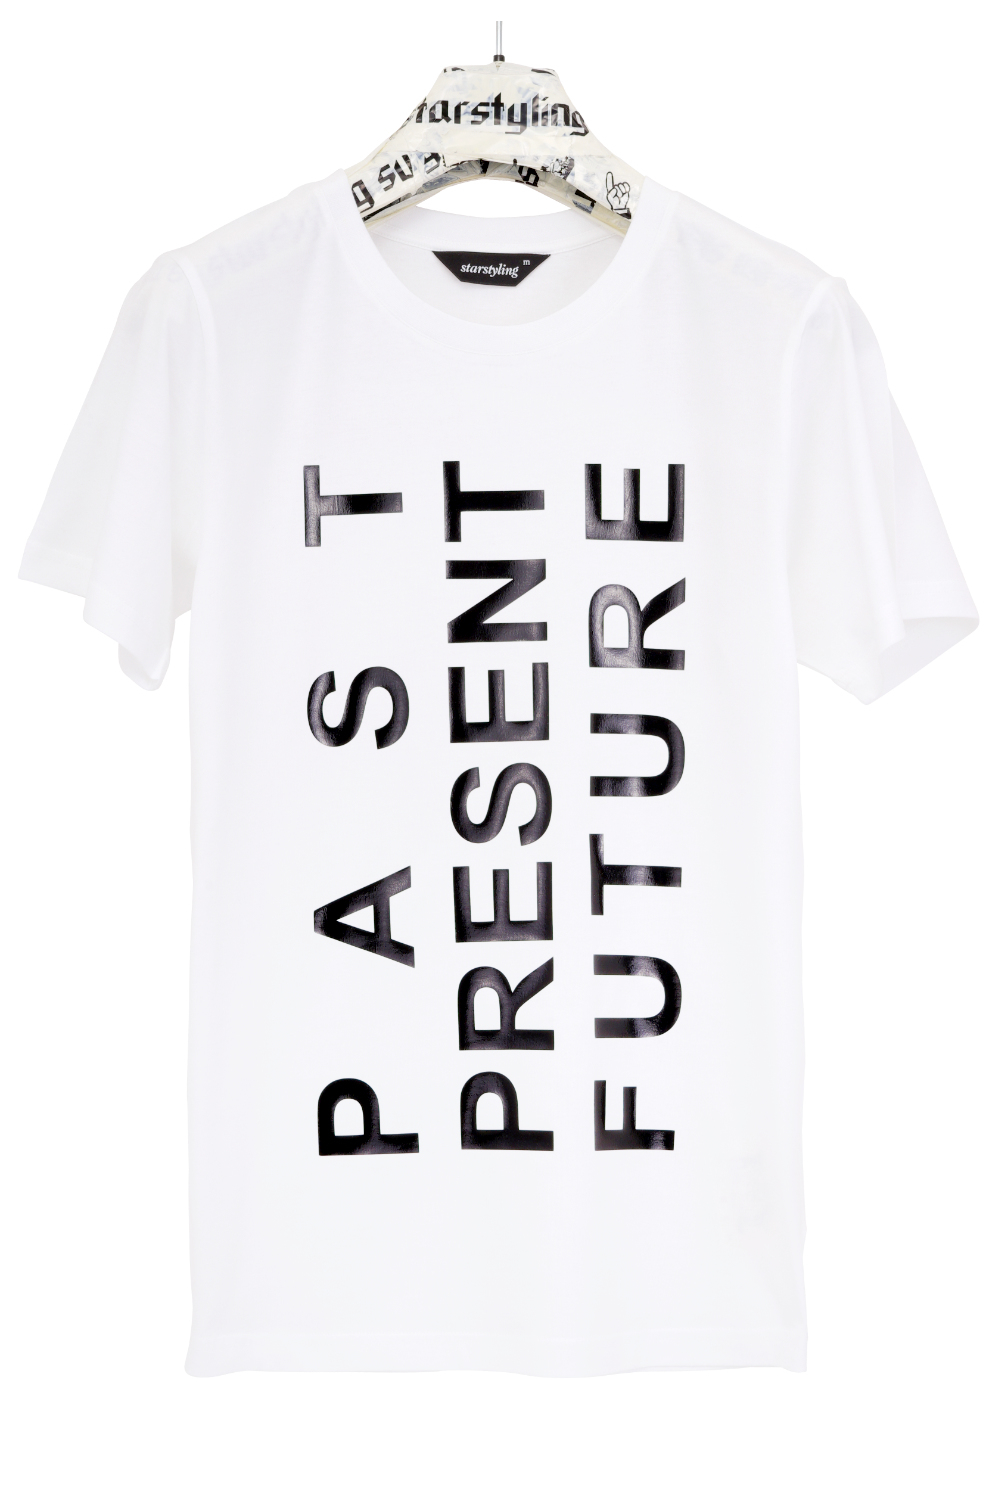 Past Present Future T-Shirt